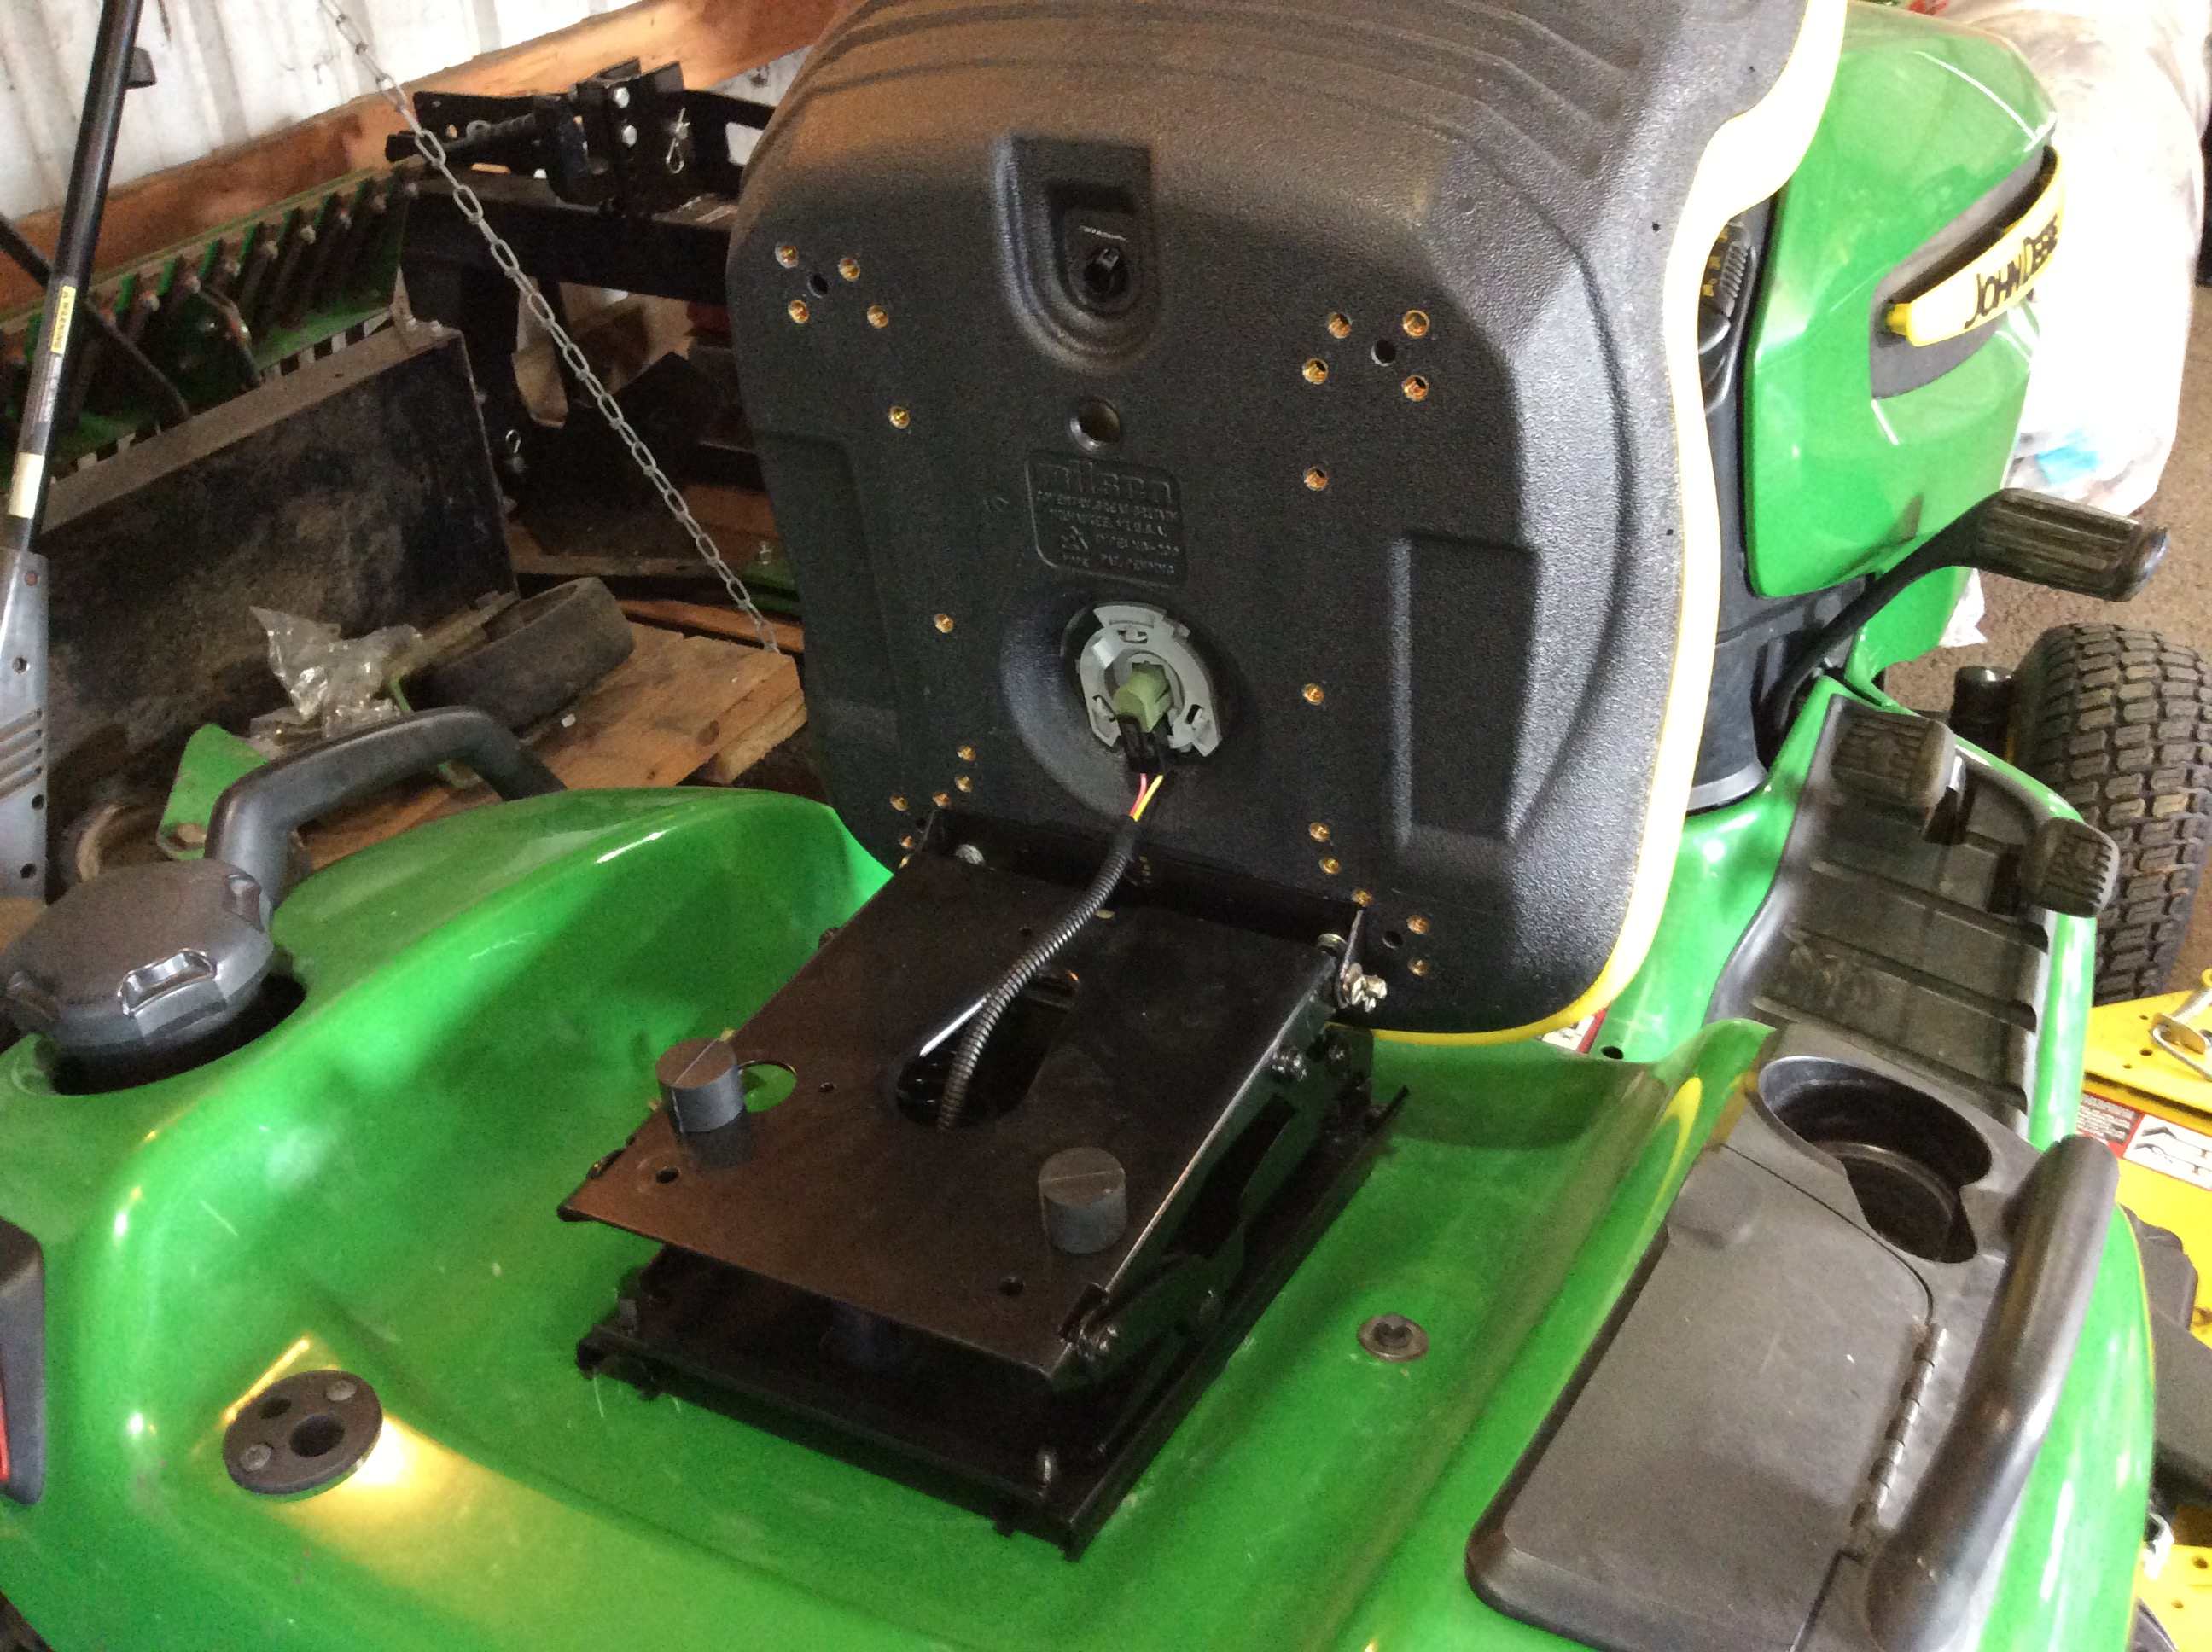 Installing Air-ride seat (BM24379 for the x700 series mower